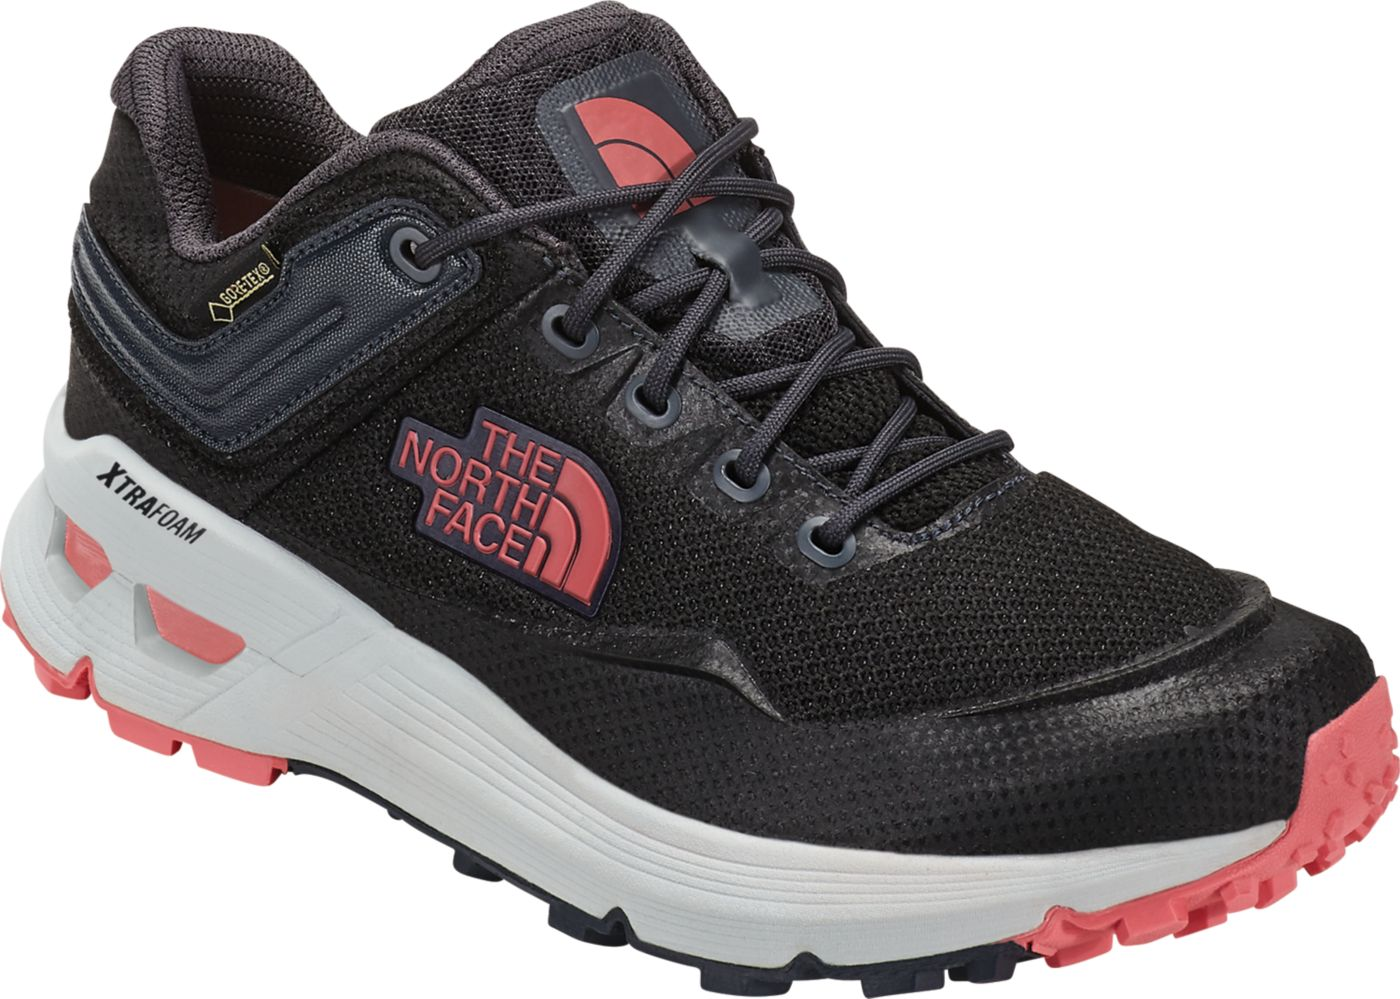 The North Face Women's Safien GTX Waterproof Hiking Shoes